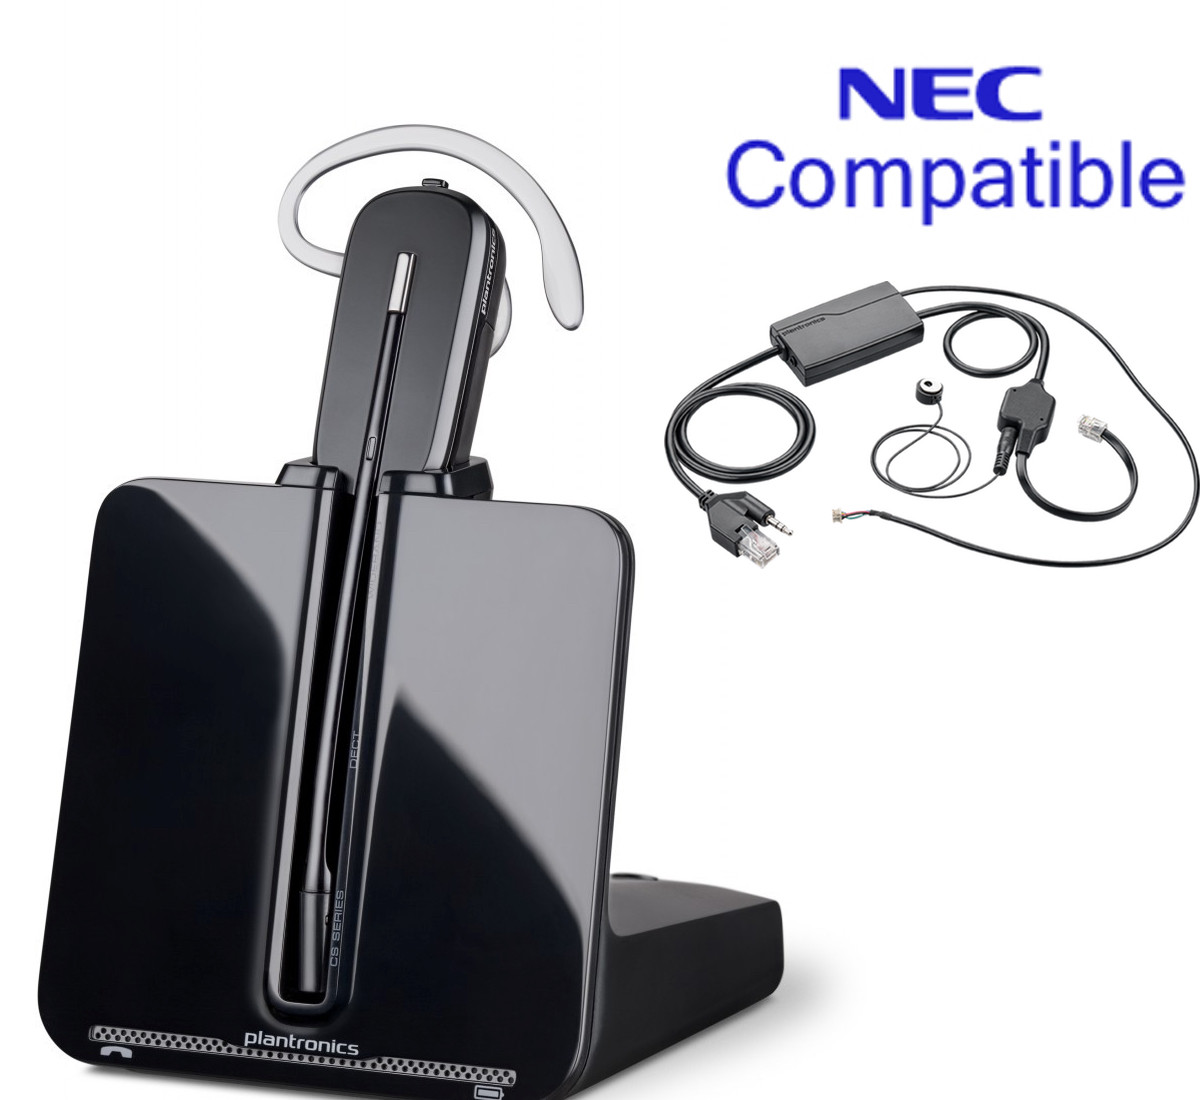 small resolution of nec compatible plantronics cordless headset bundle cs540 ehs with electronic remote answerer nec phones